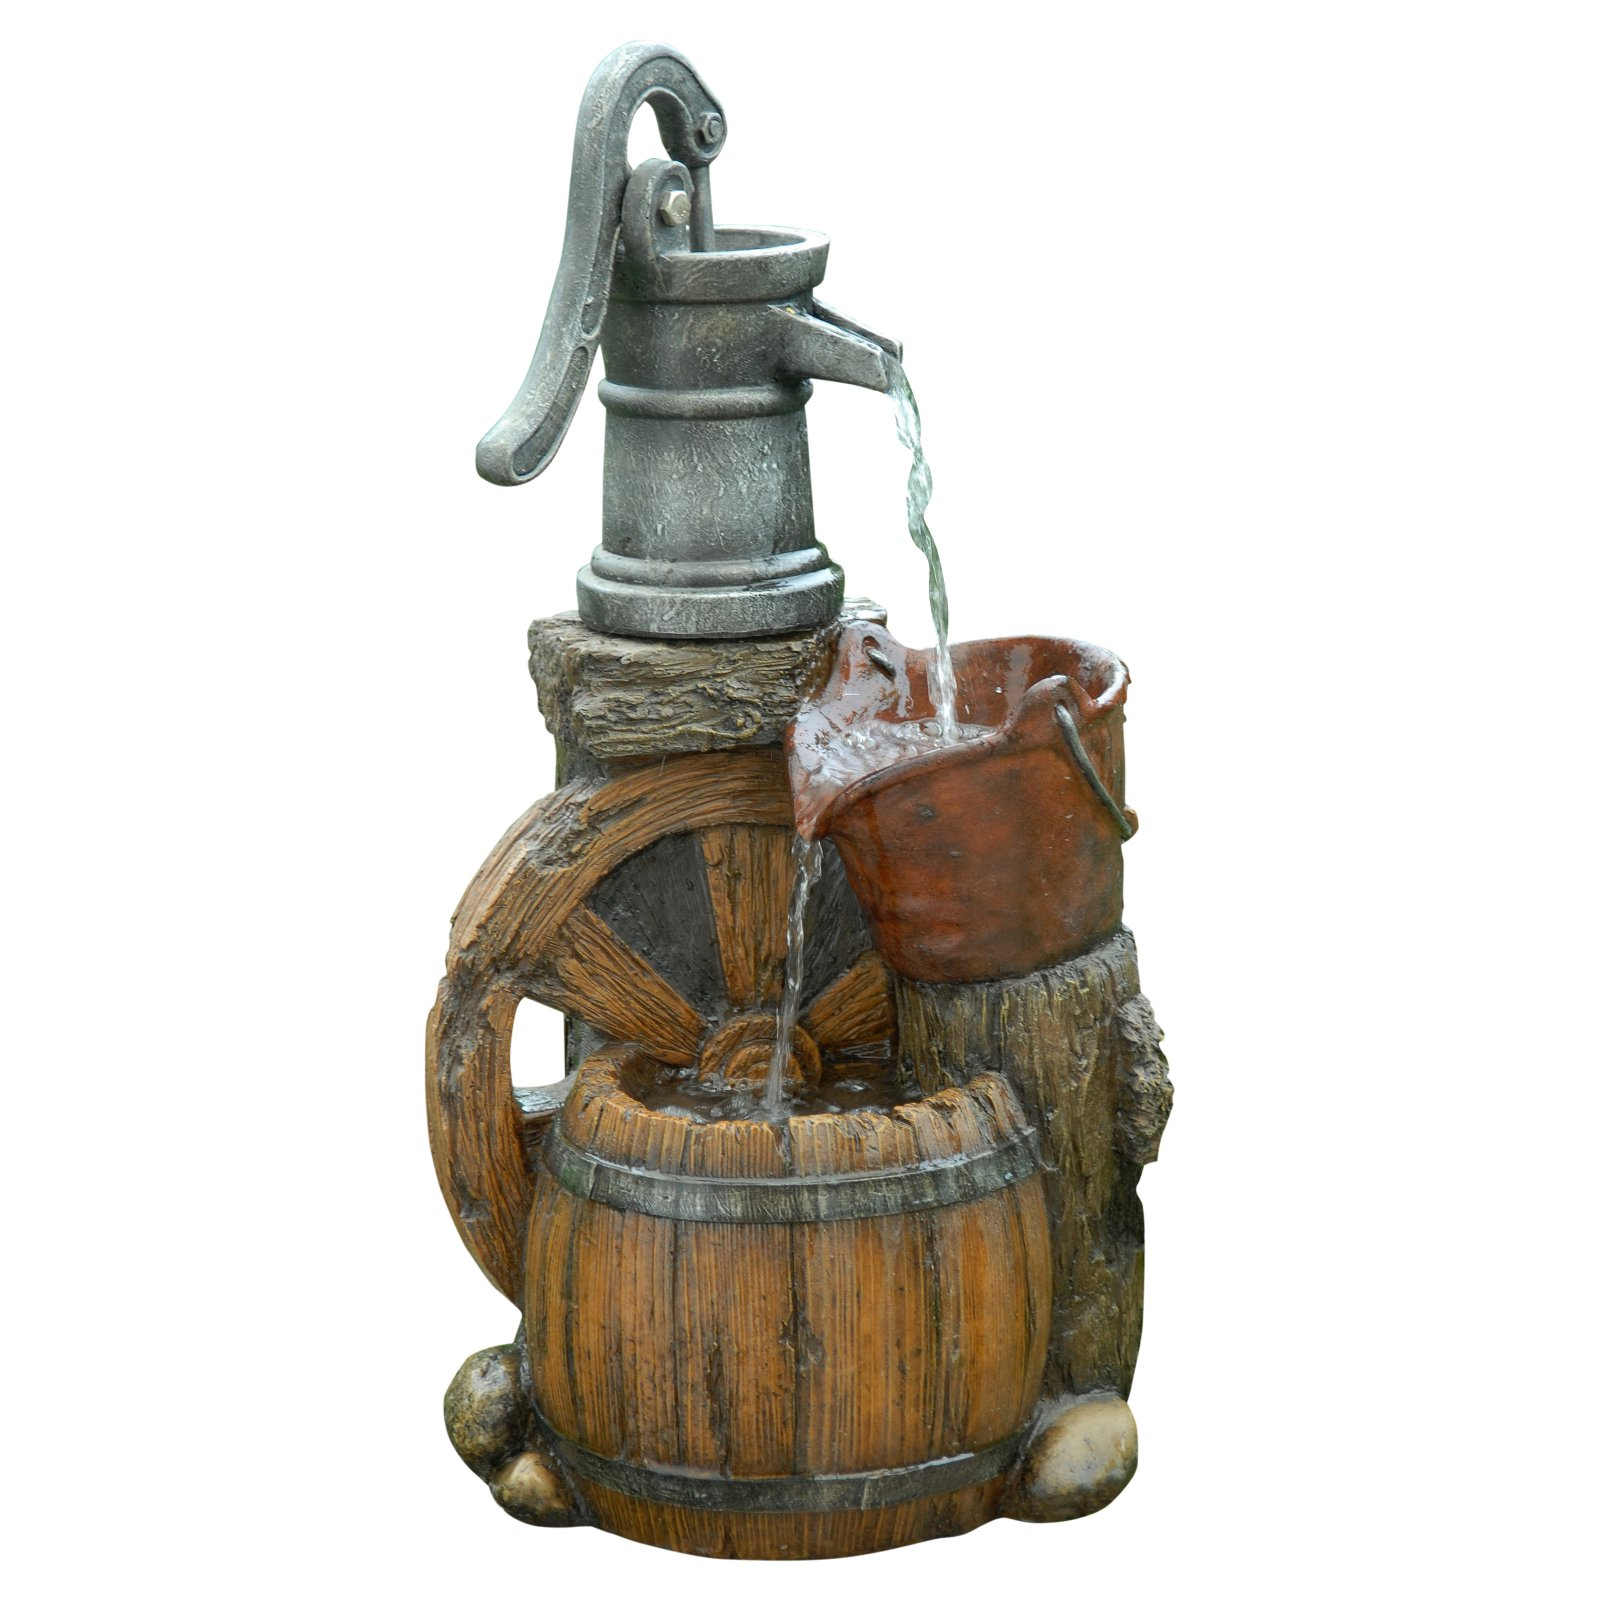 24 Inch Old Fashion Pump Barrel Fountain by Benzara